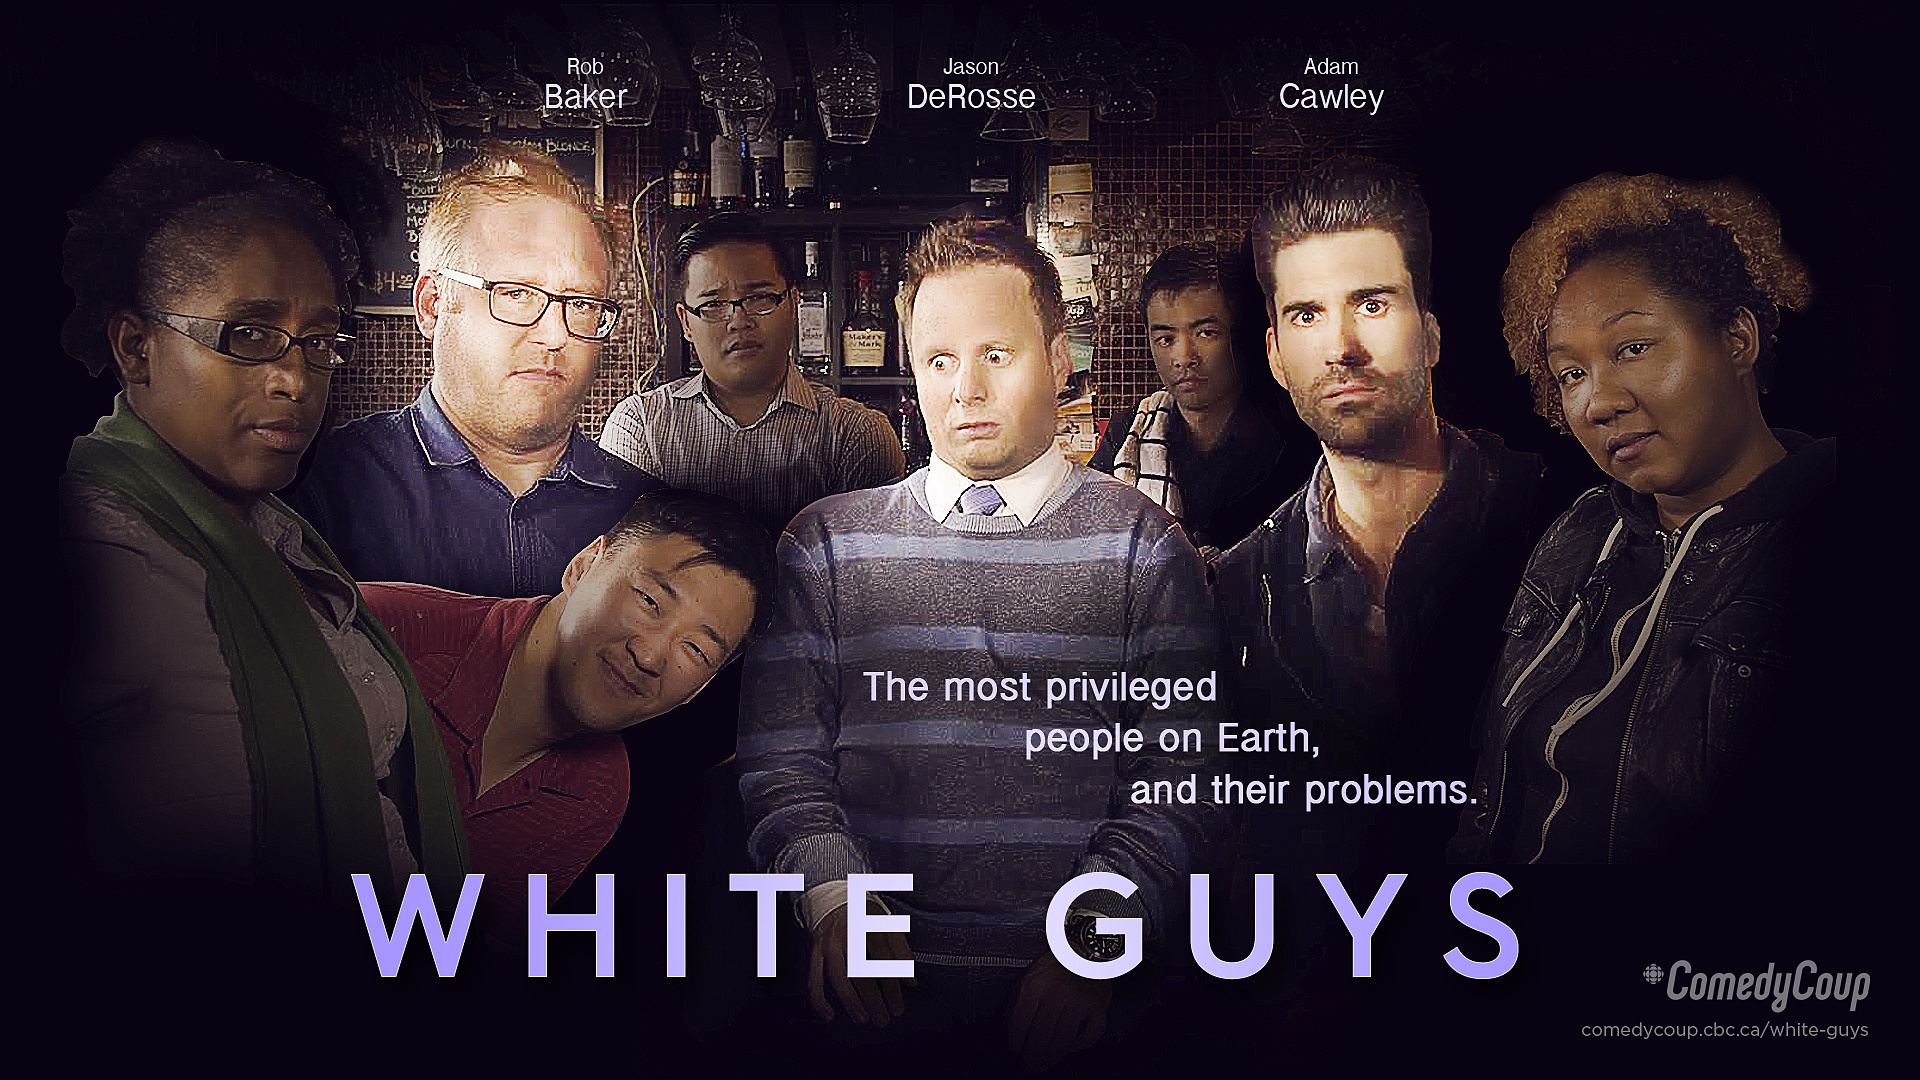 Week 4 Key It: Poster A White Guys